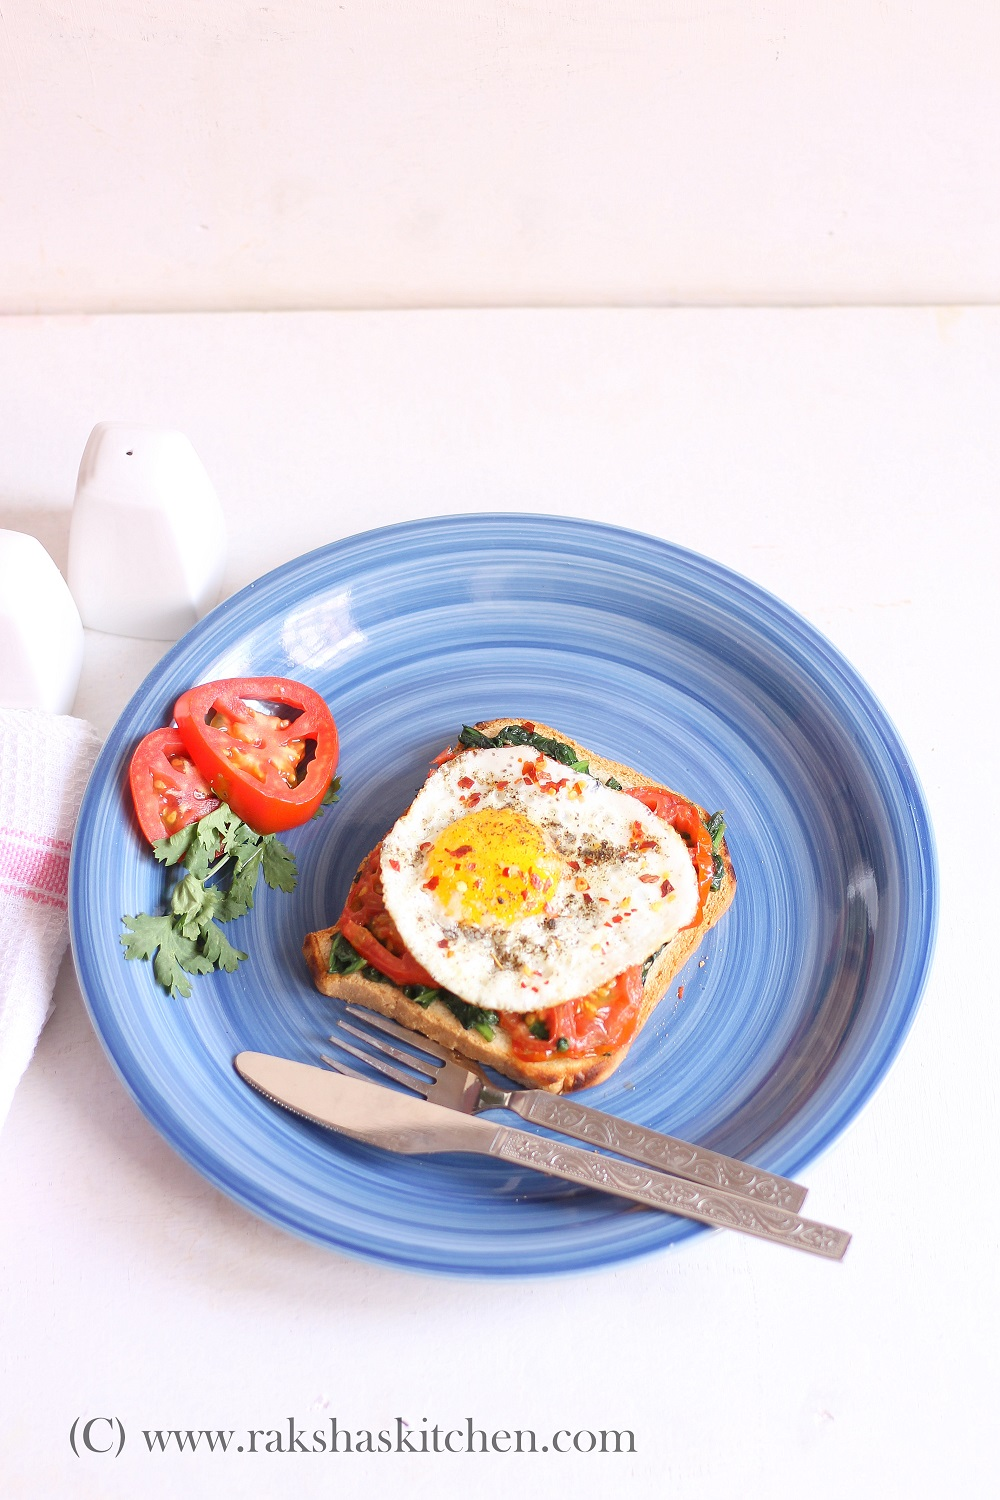 Open toast with egg, tomato and spinach